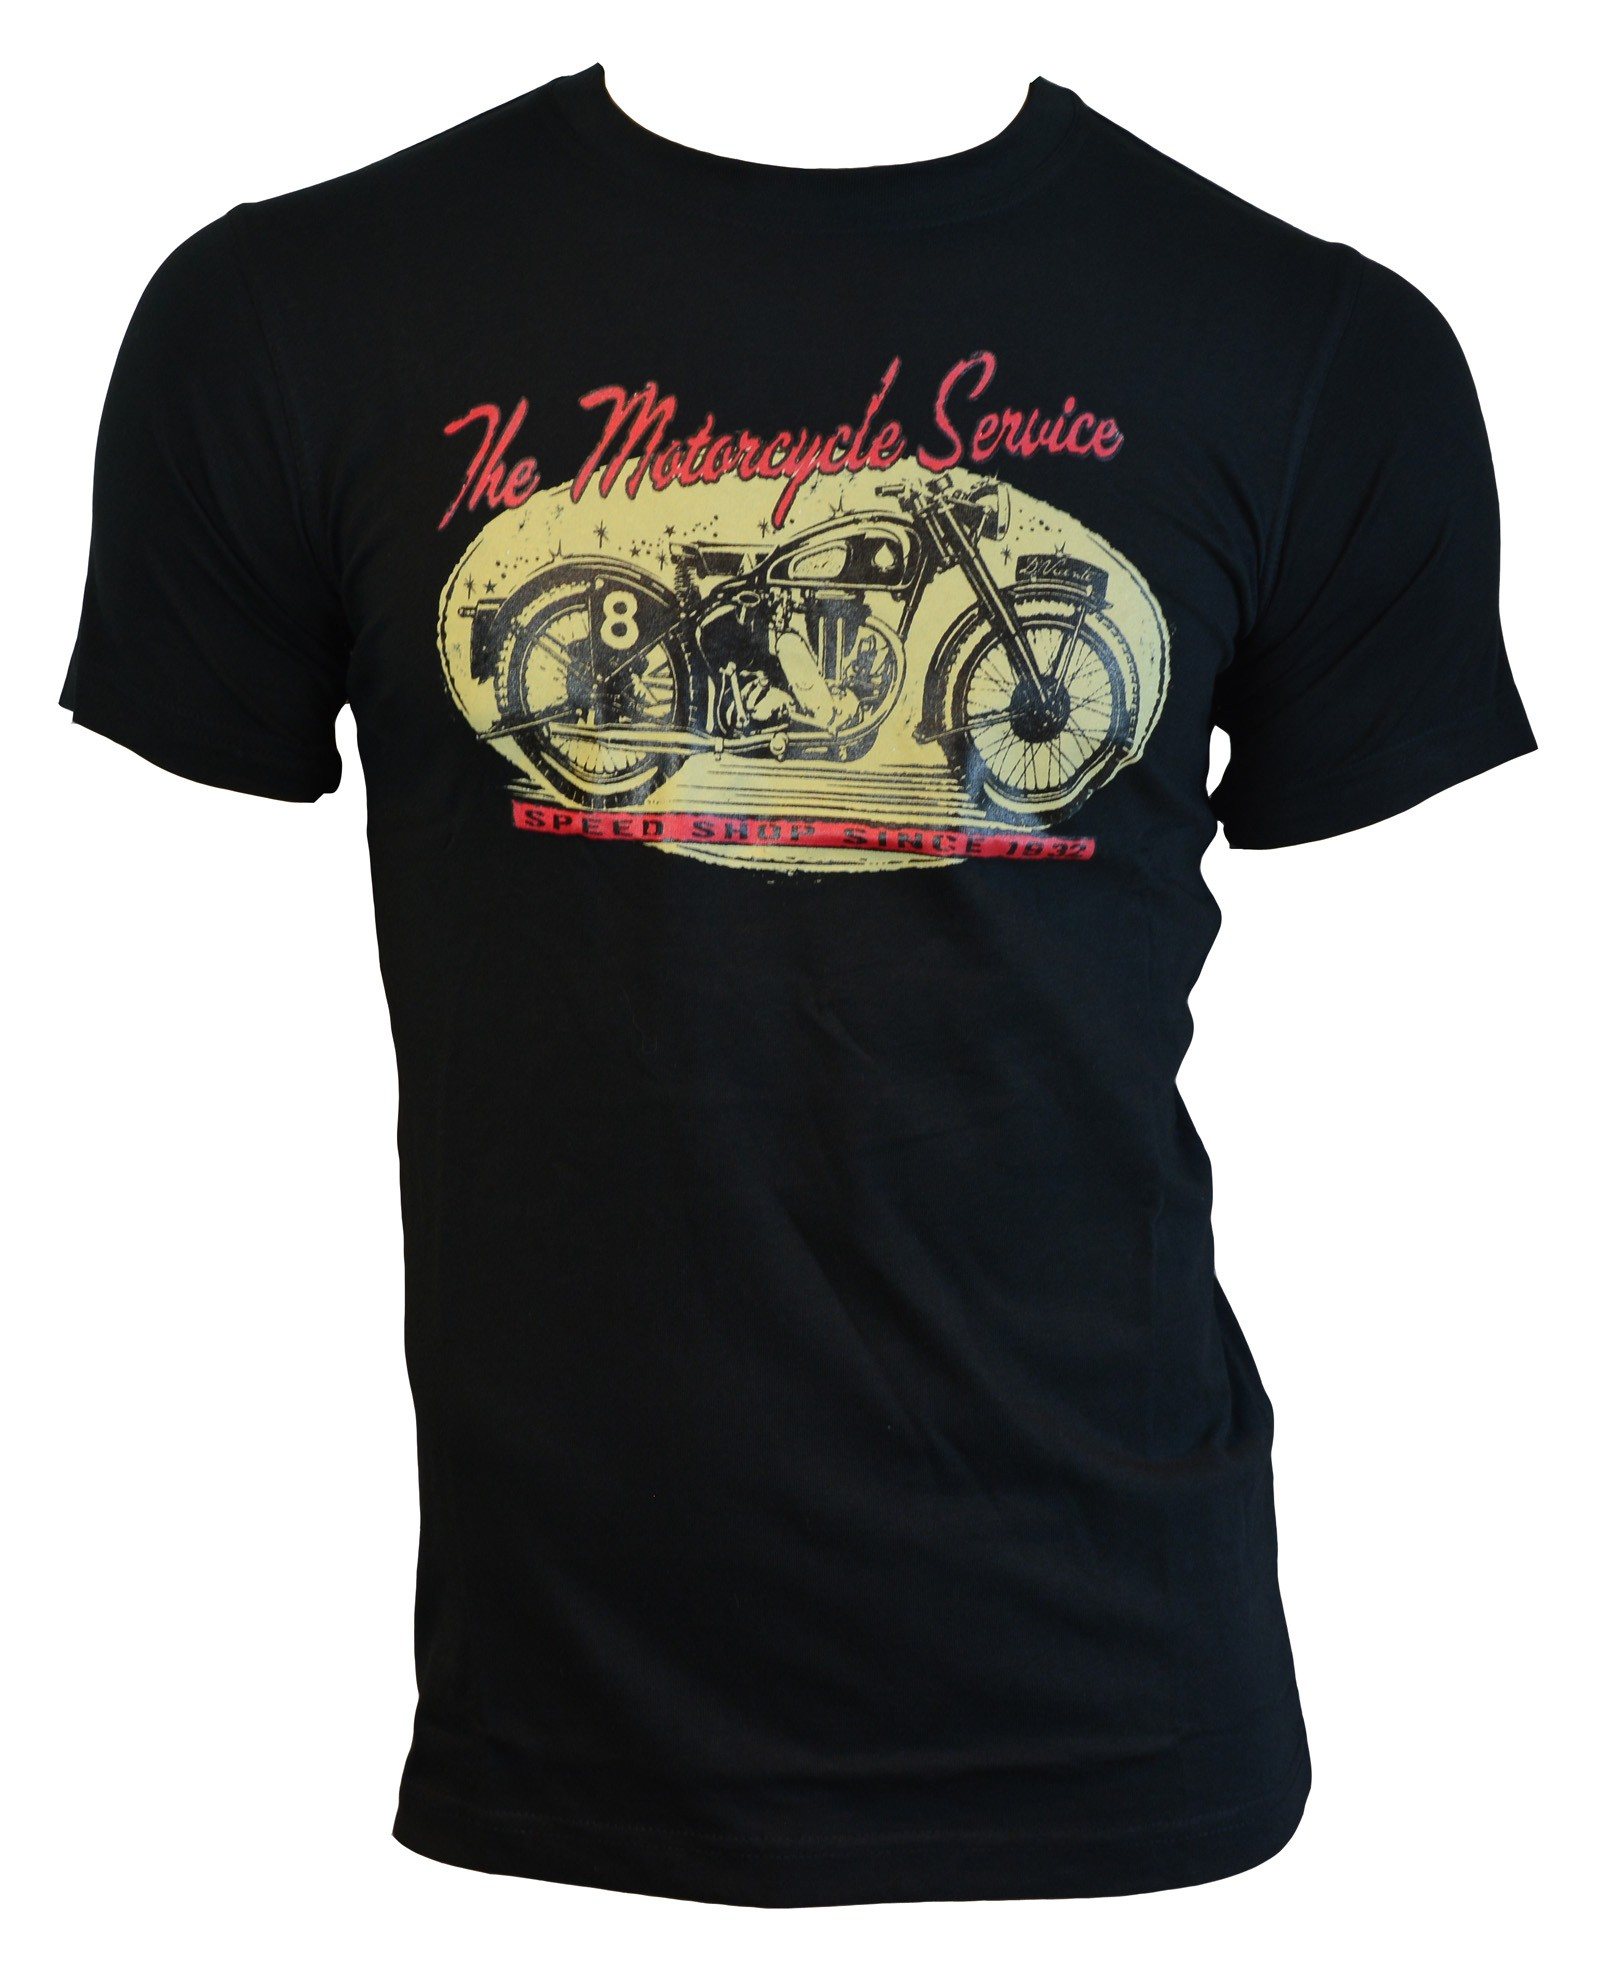 D.Vicente - Motorcycle Service T-Shirt